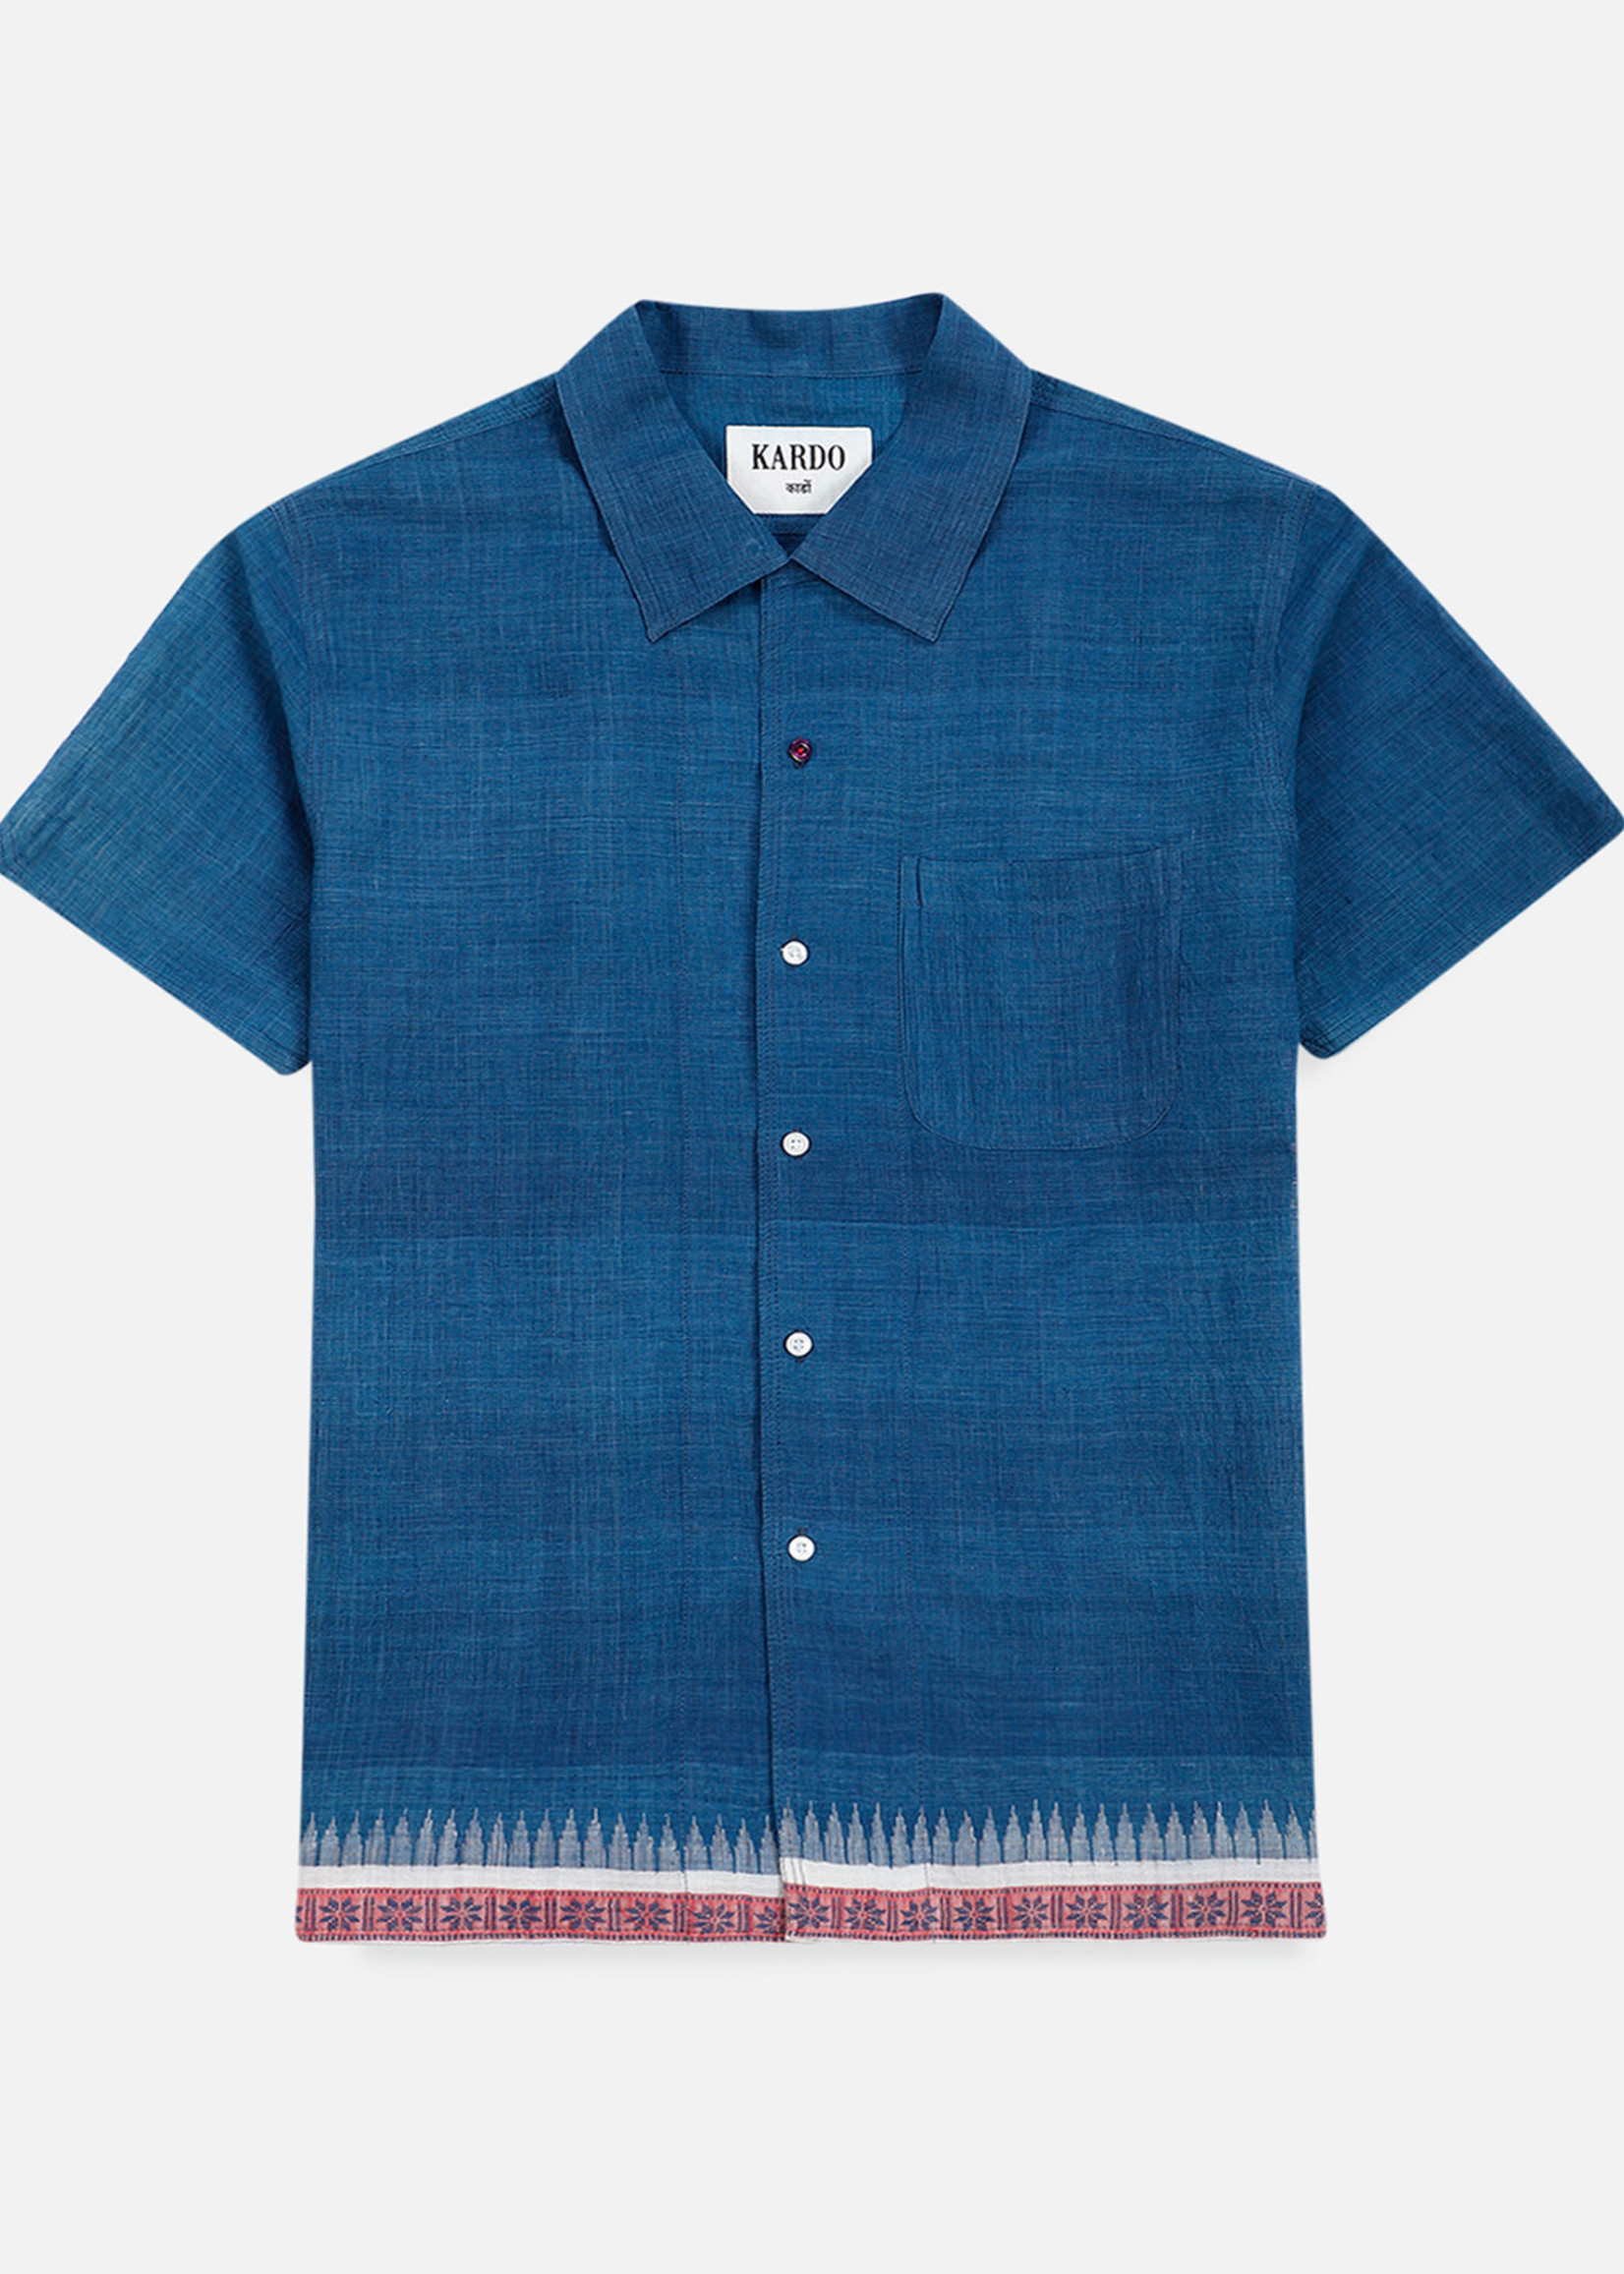 Kardo Kardo Chintan Indigo Short Sleeve Shirt